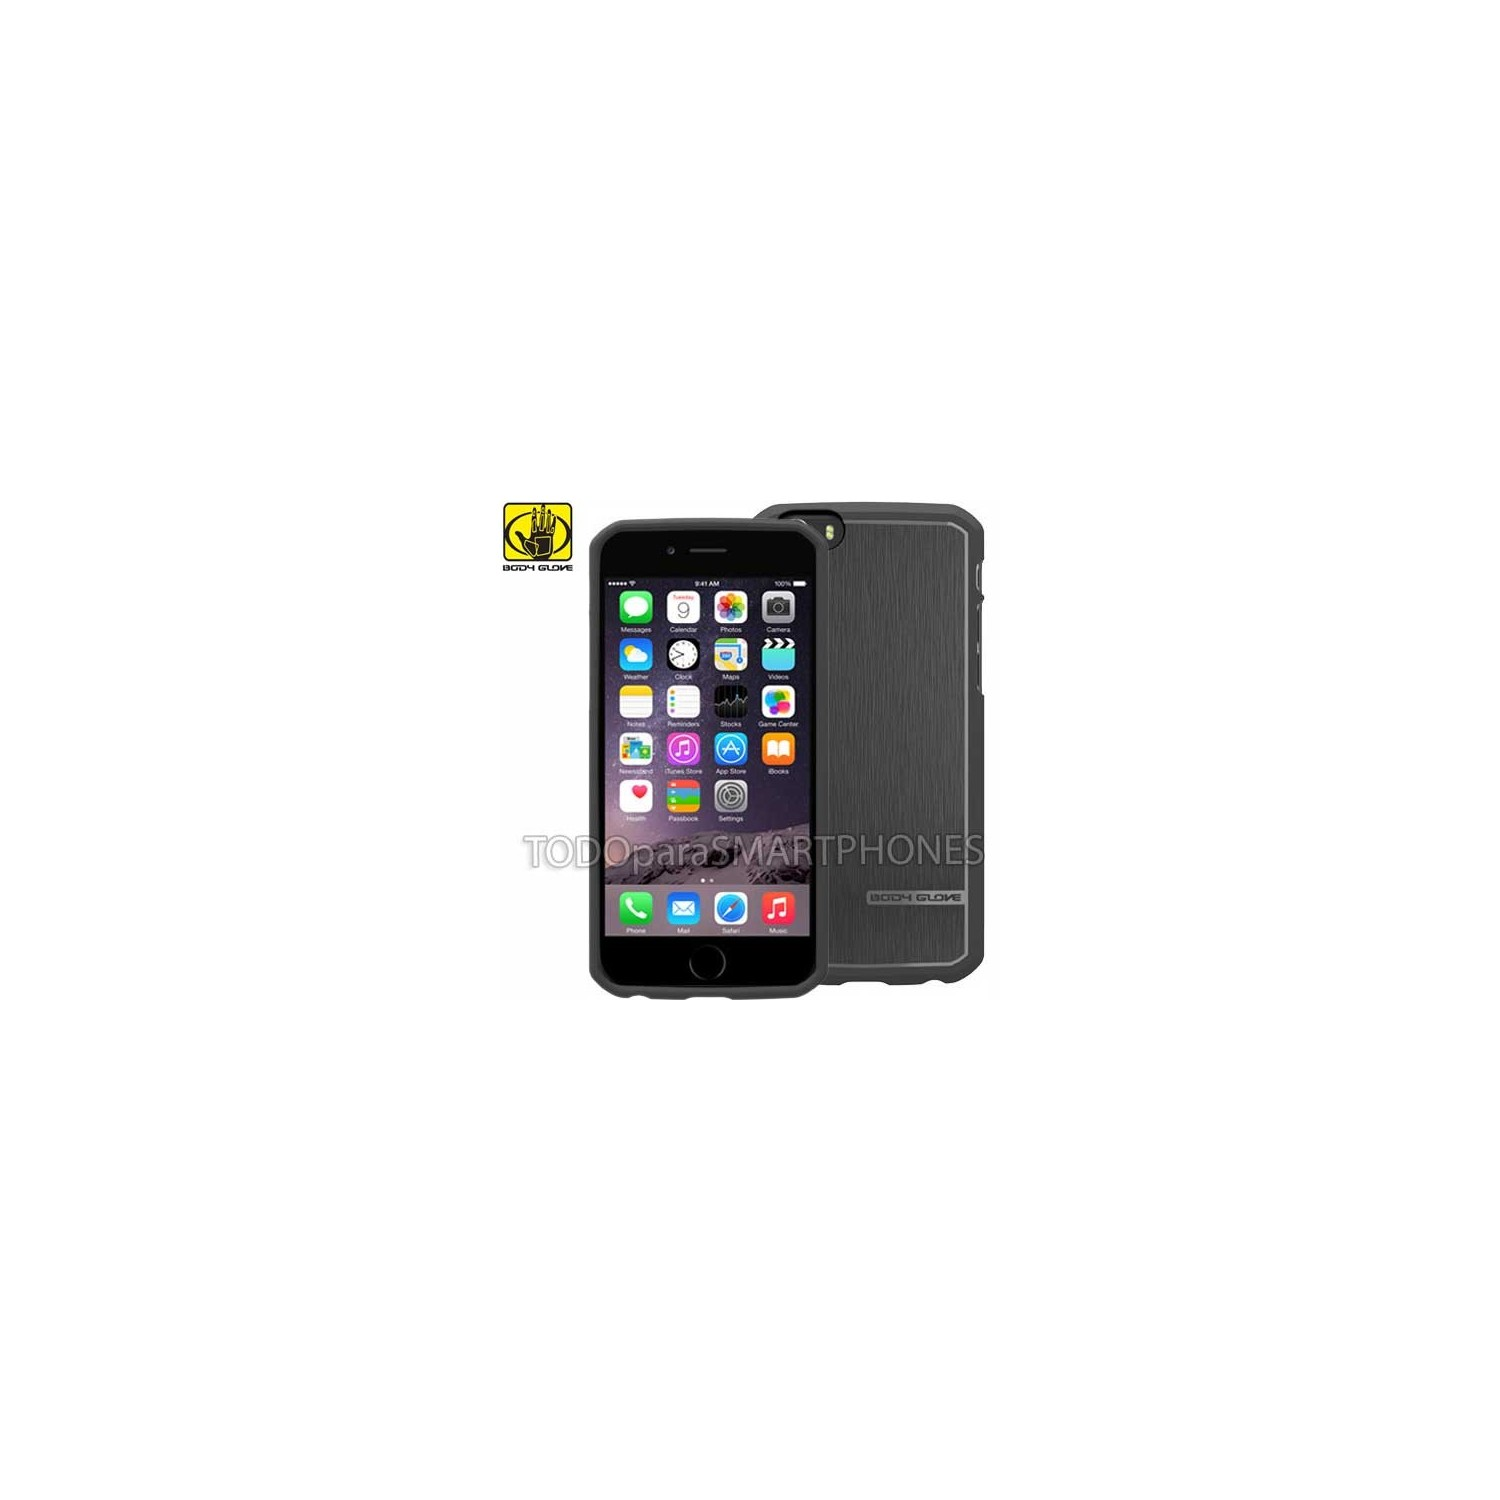 Funda Body Glove para iPhone 6 Satin negro